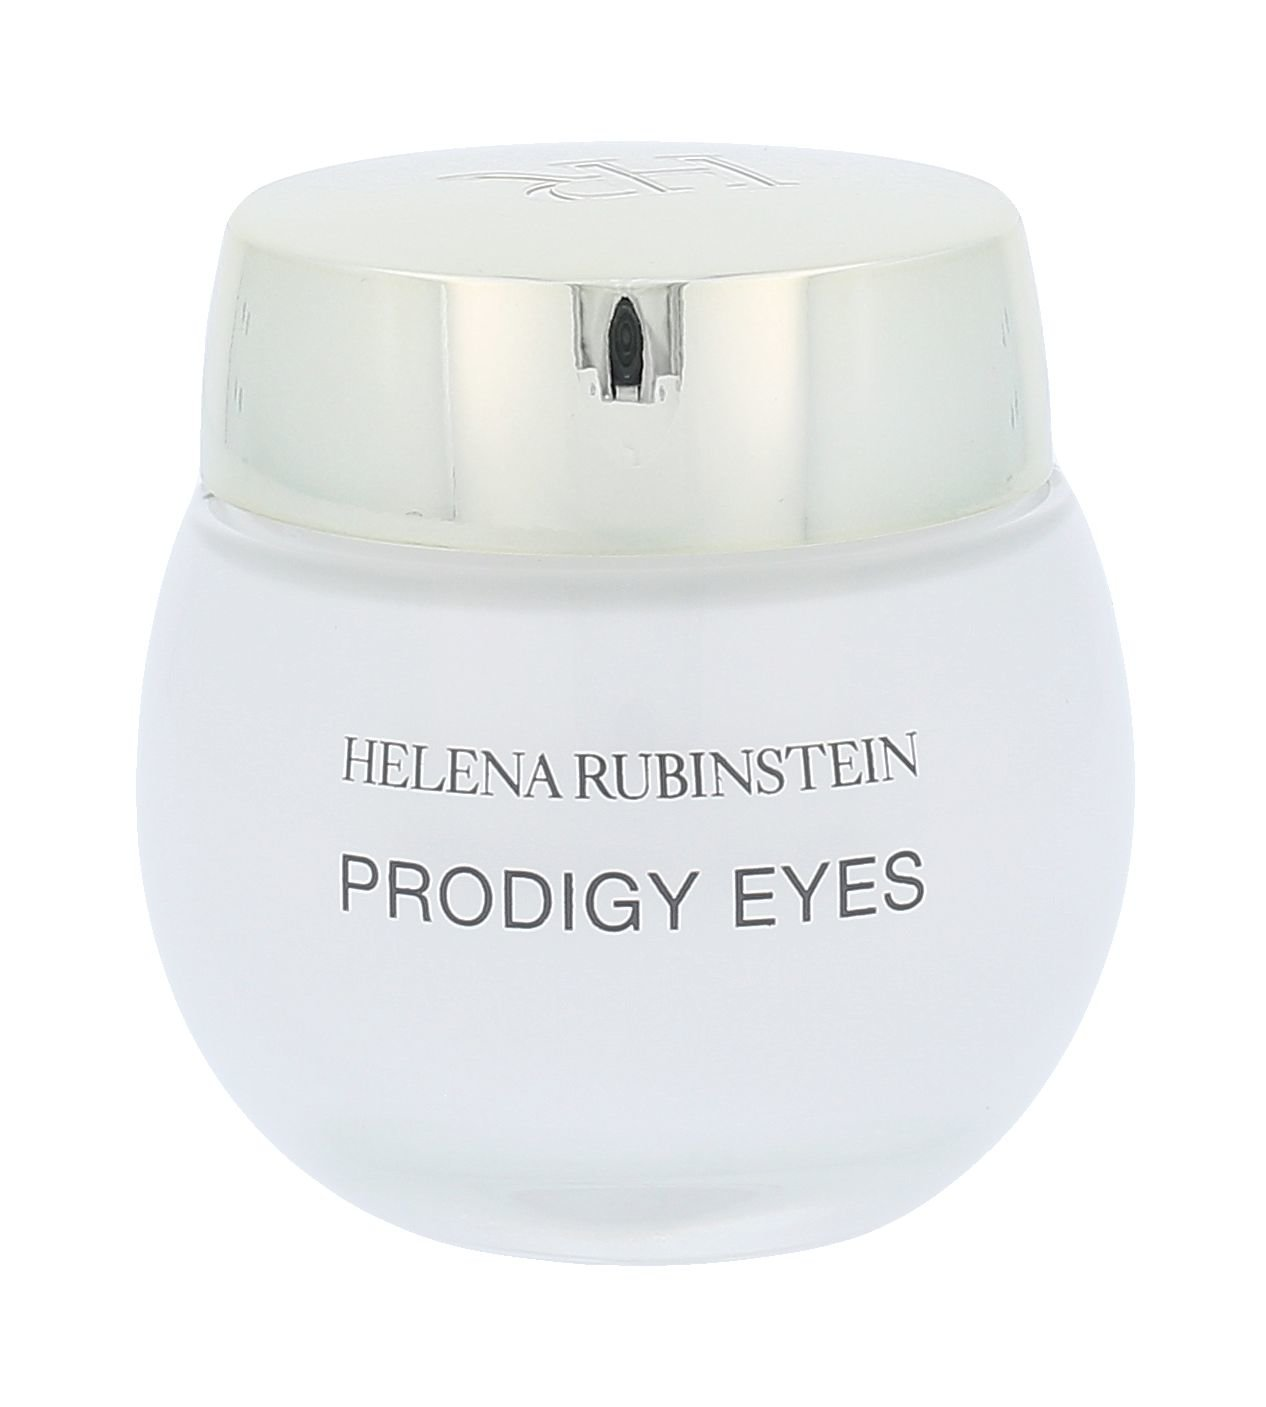 Helena Rubinstein Prodigy Eyes Cosmetic 15ml